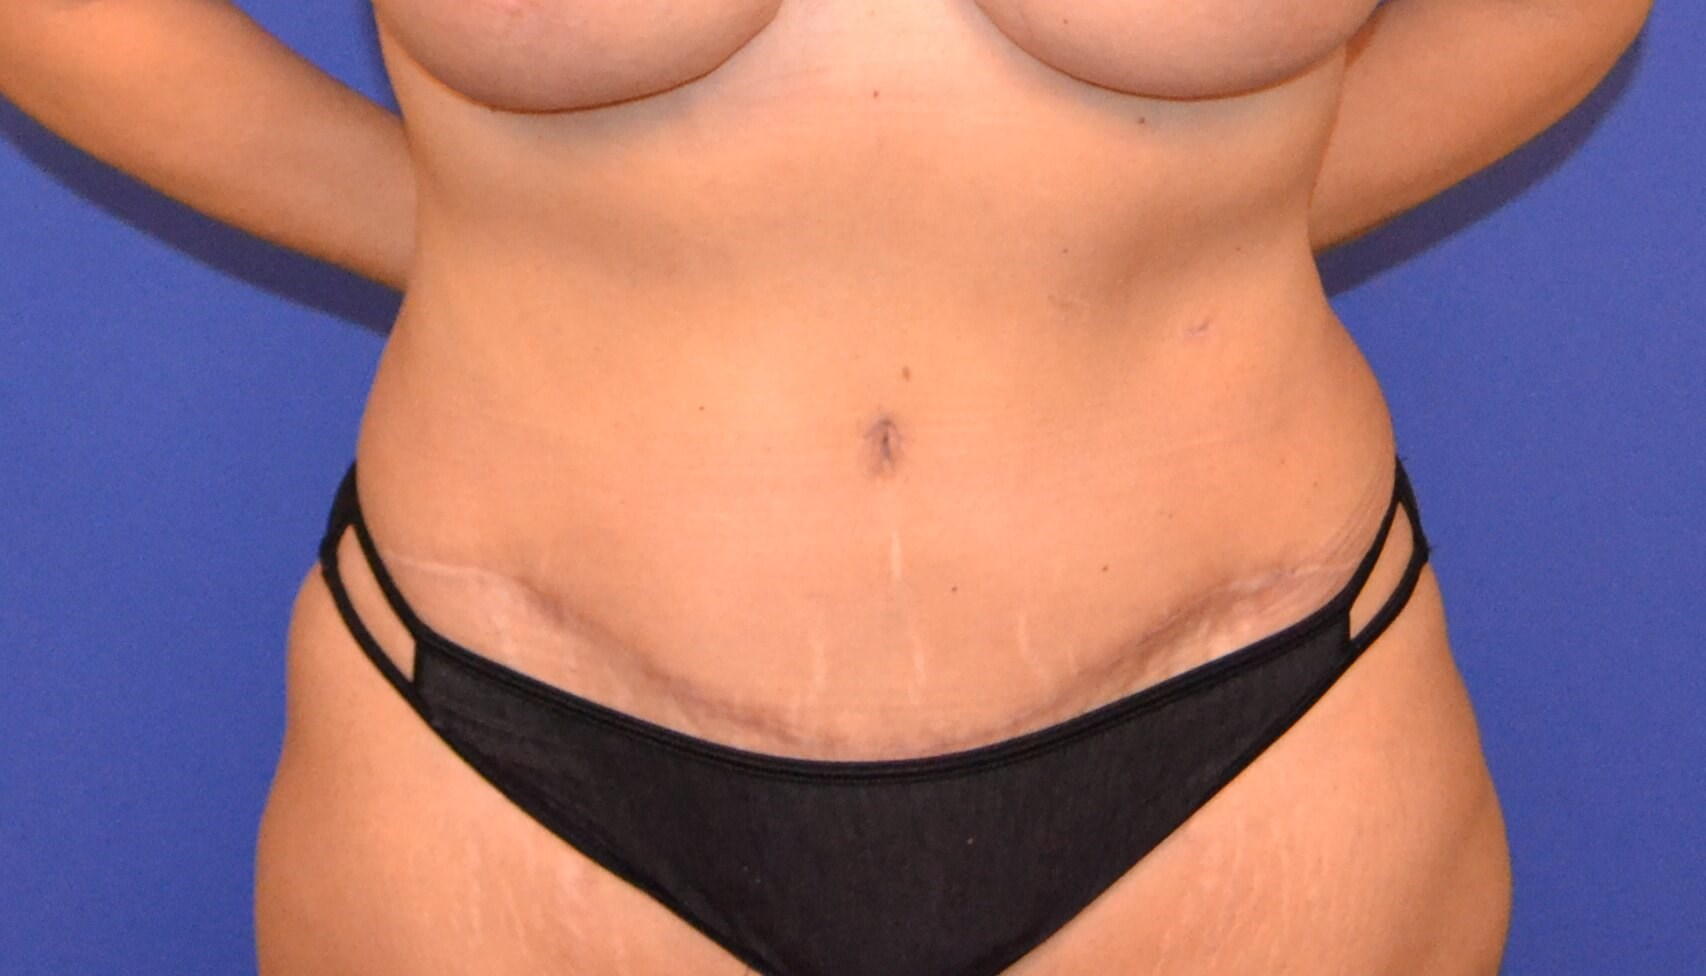 DIEP / Tummy Tuck After